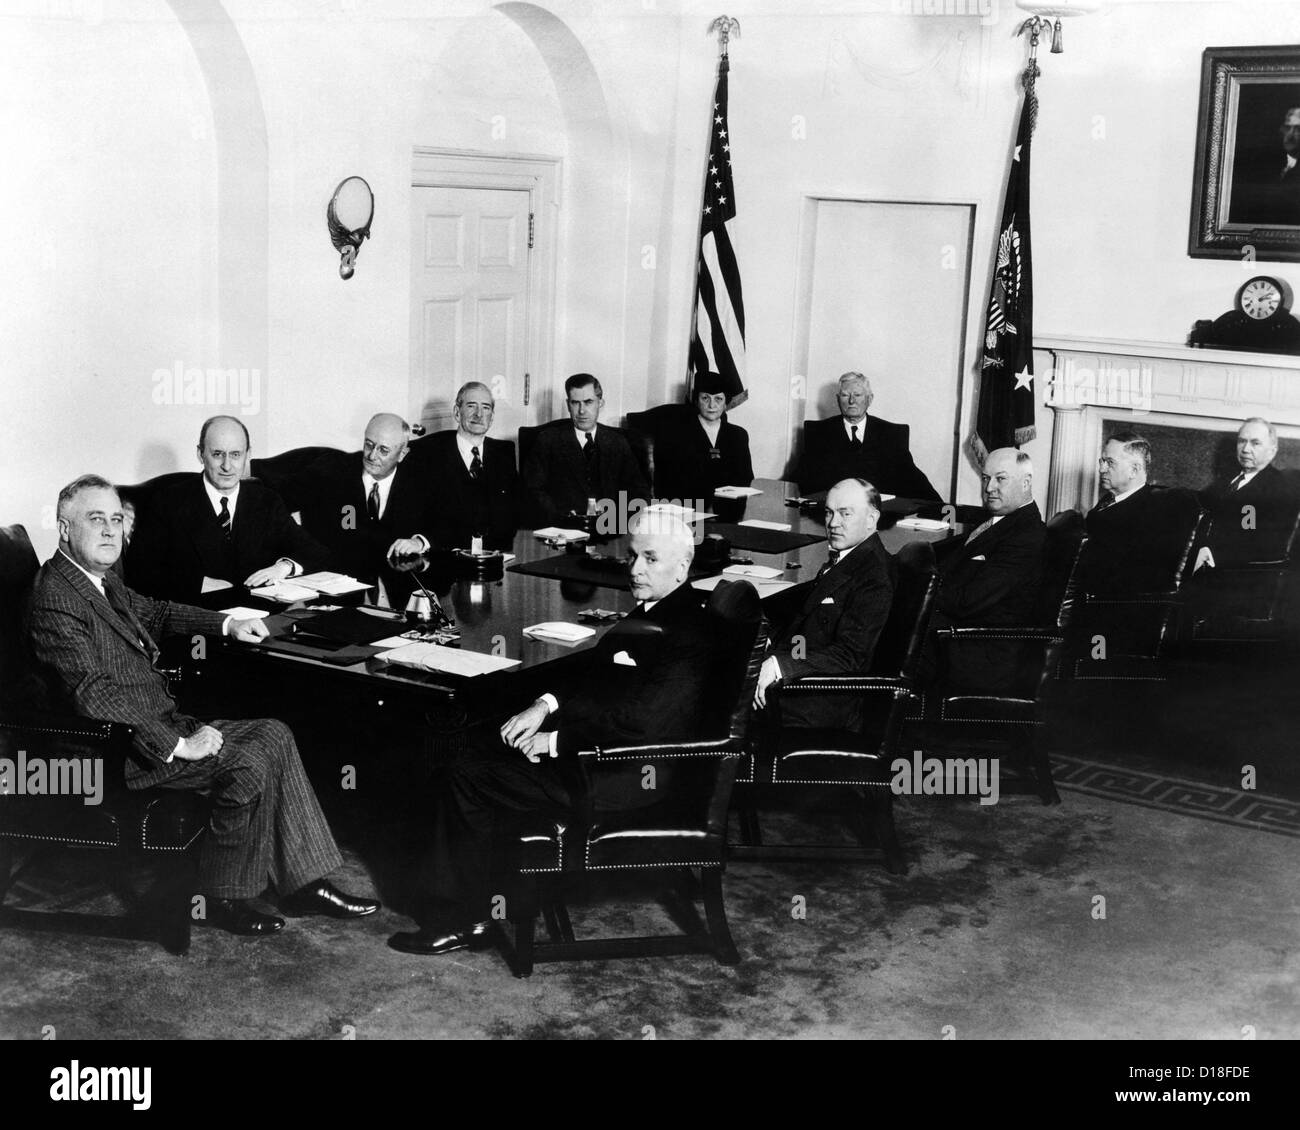 franklin roosevelt's second term cabinet. at head of table is fdr